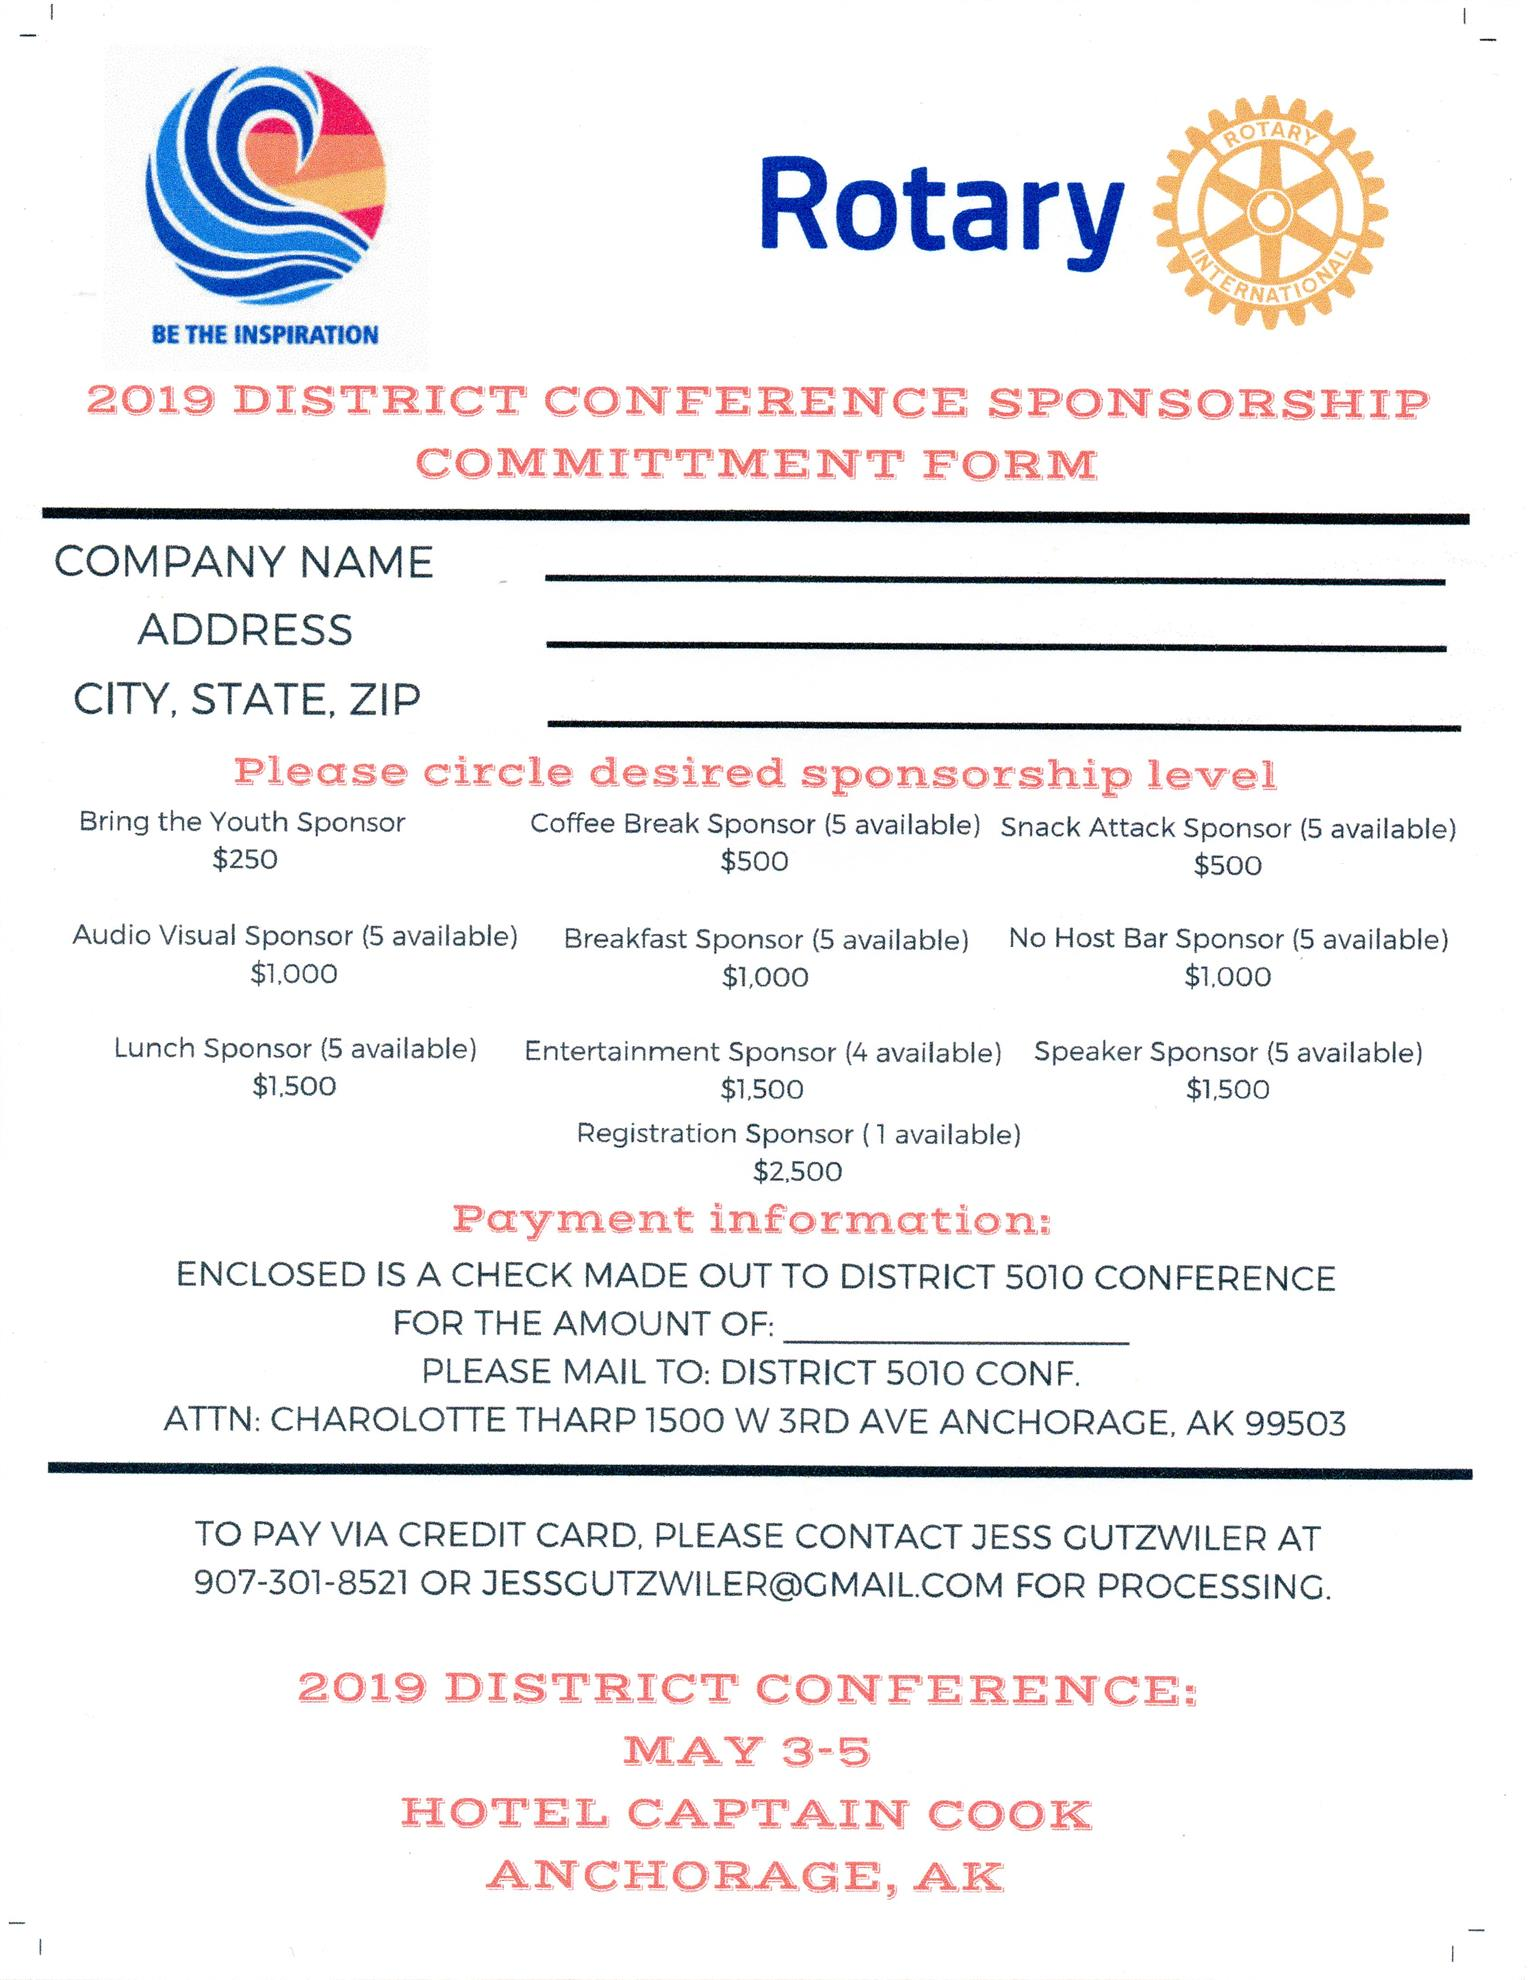 Stories Rotary Club Of Homer Kachemak Bay Send You Trailer Tow Diagrams As Well Give Me One Moment Please District Has Published A List Conference Sponsorship Opportunities See Them Below Jess Gutzwiler From Anchorage South Is In Charge Sponsors